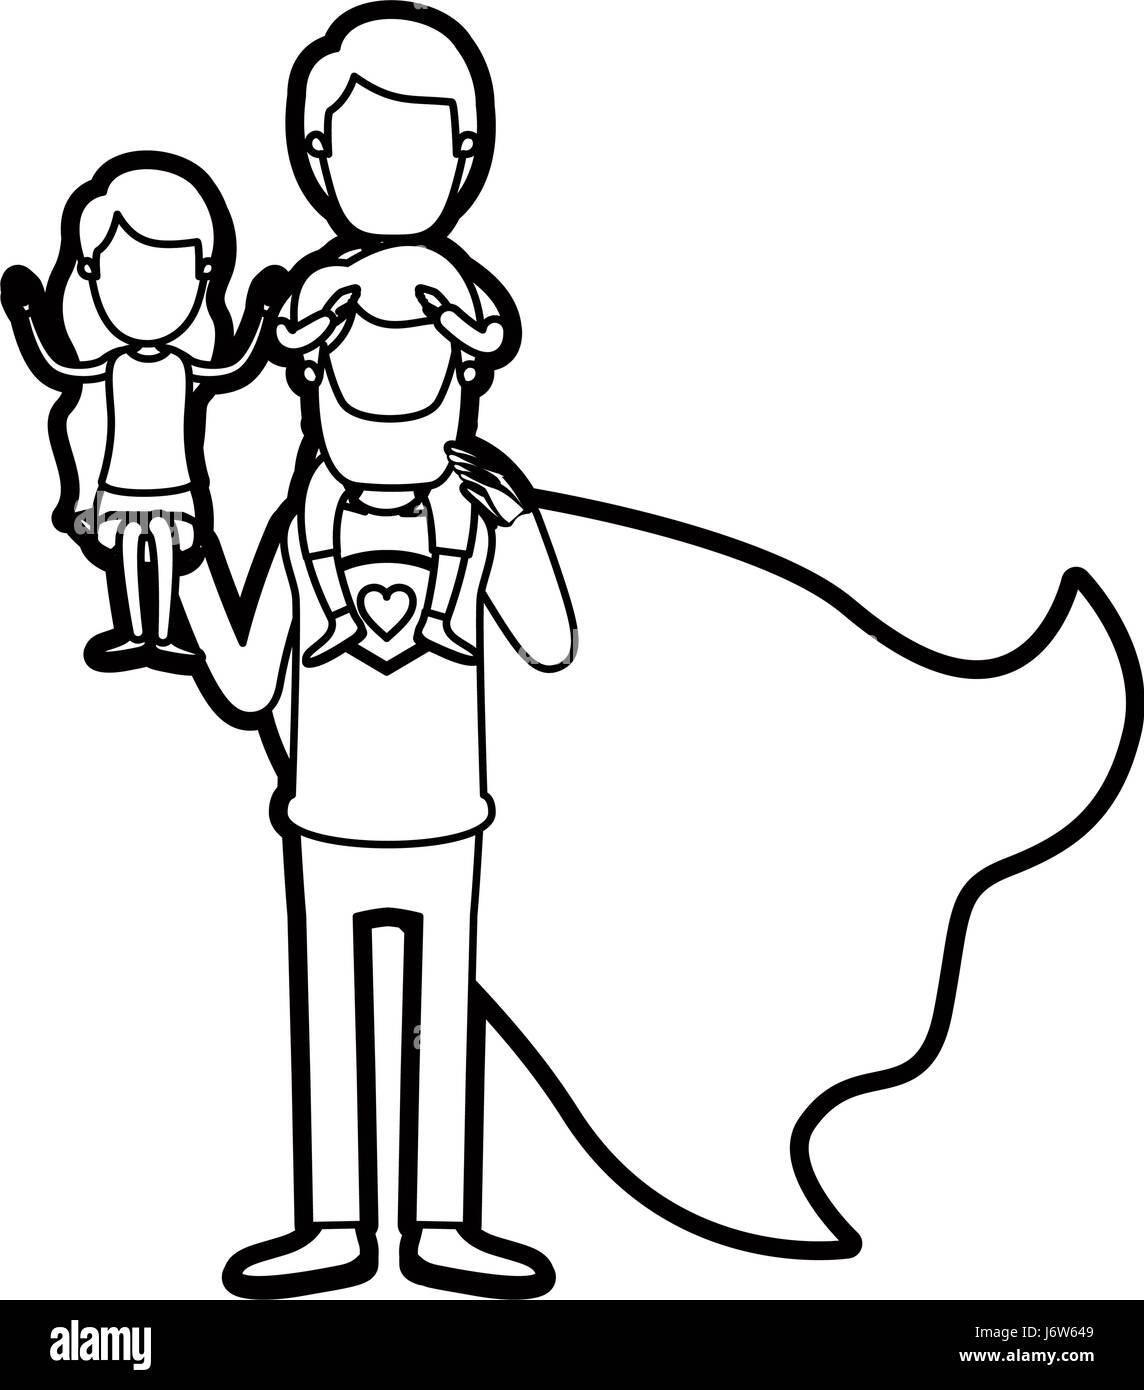 caricature thick contour faceless full body super dad hero with girl on his hand and boy on his back - Stock Image